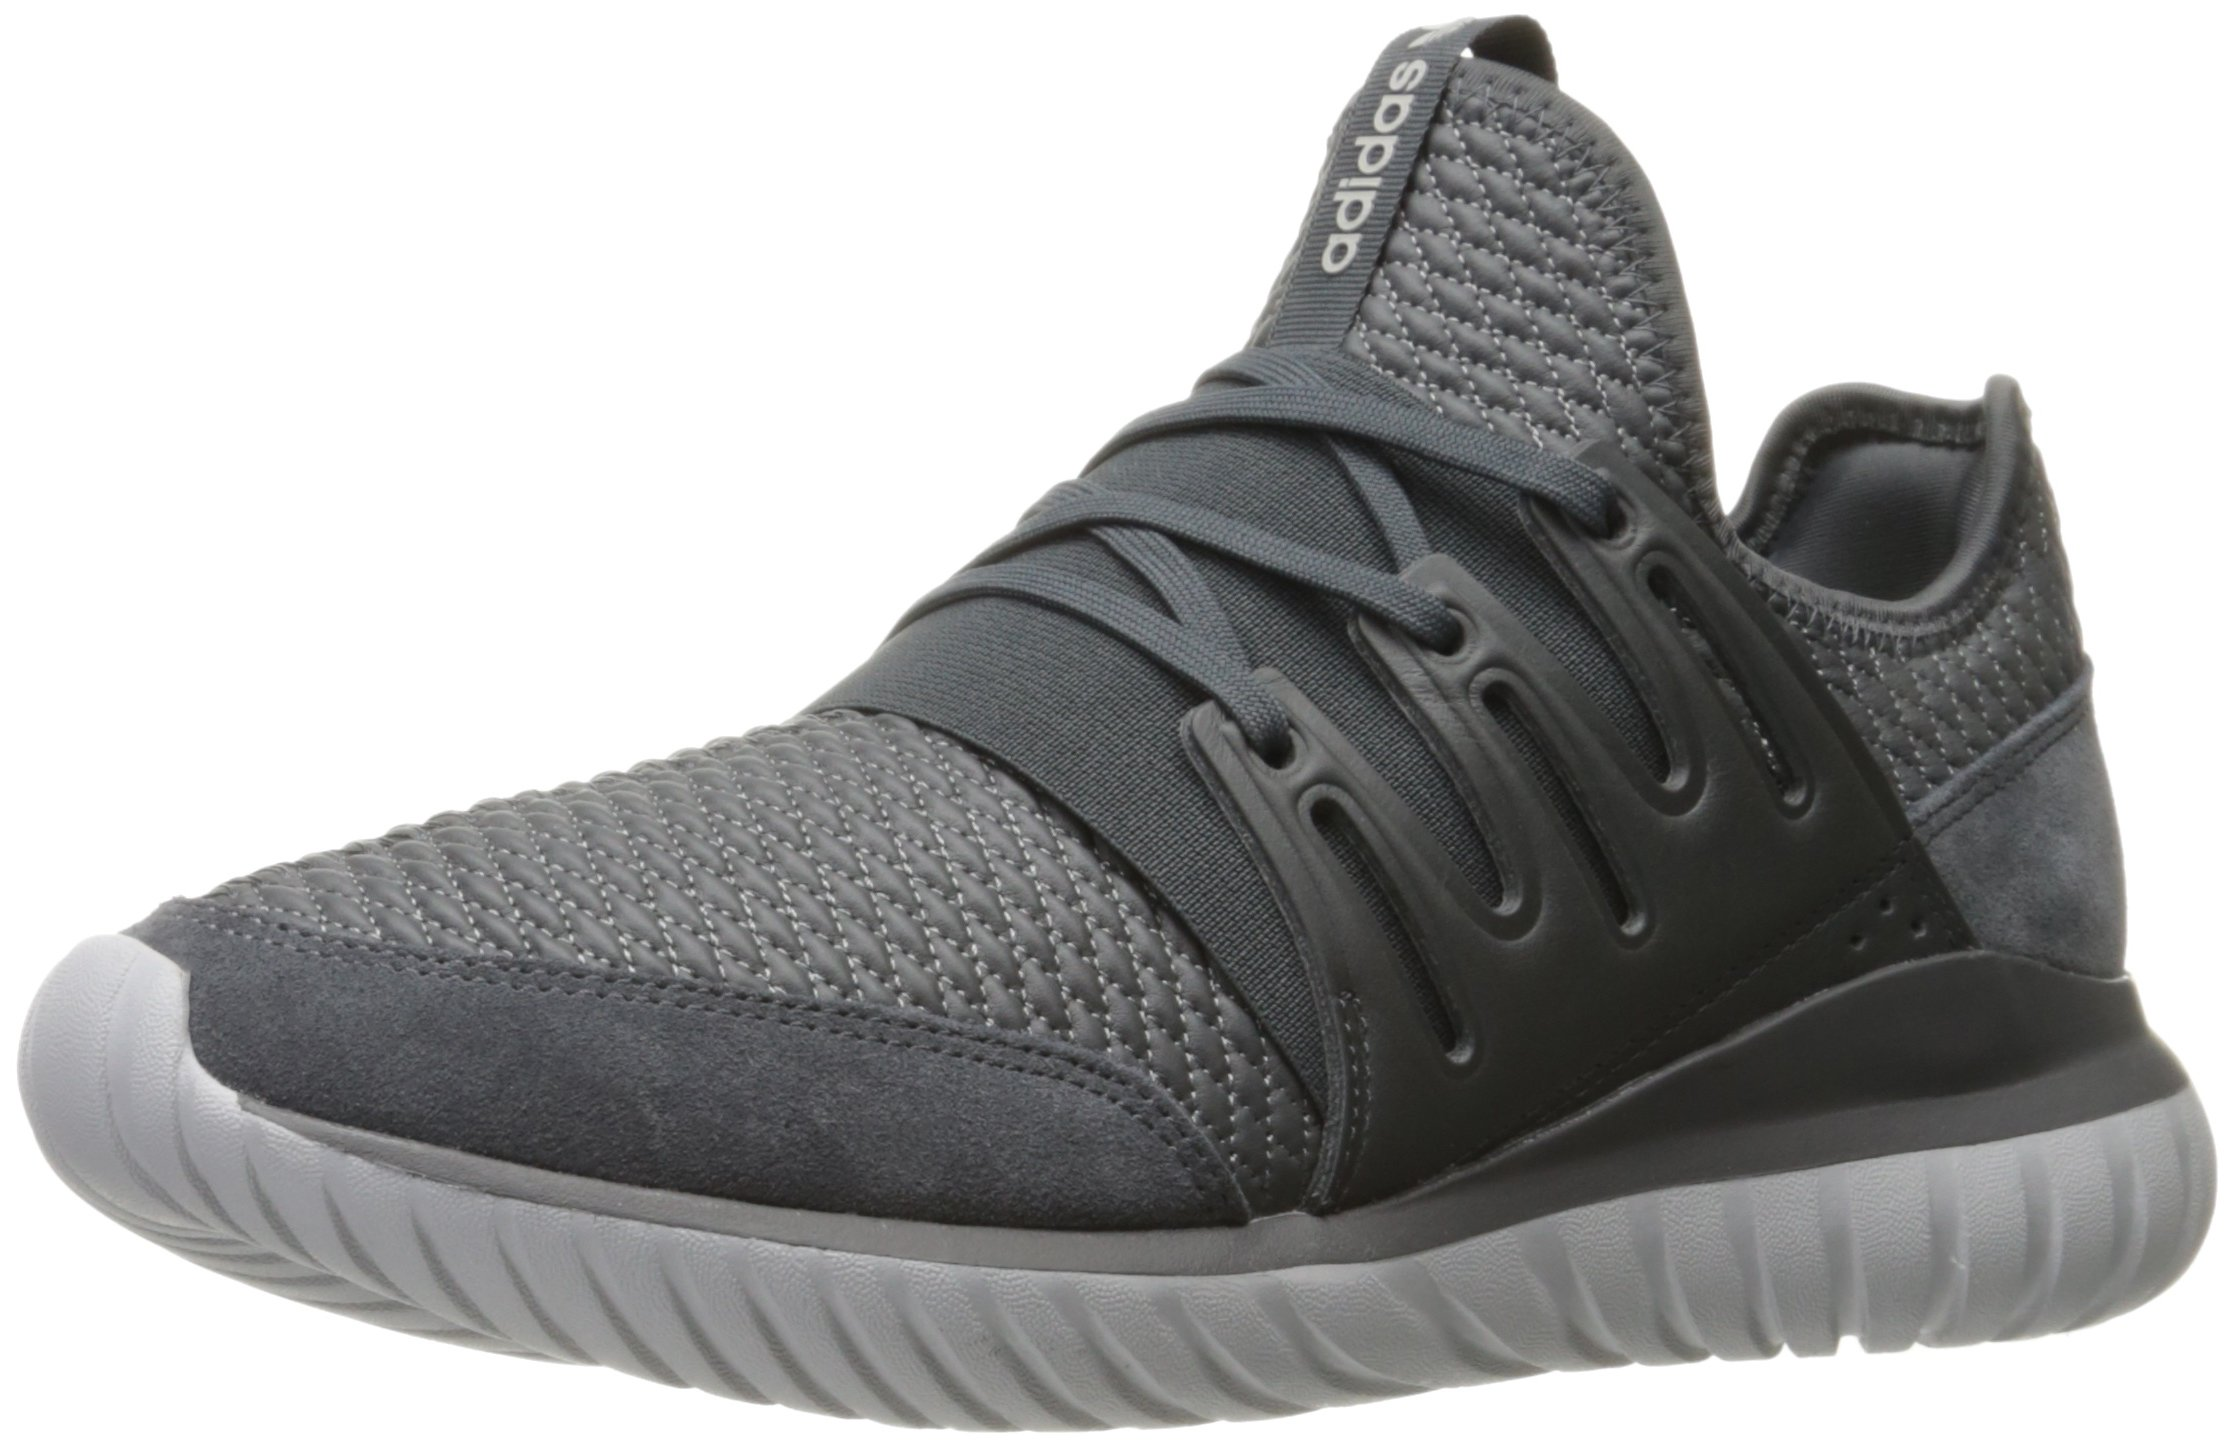 low priced a9e0c f4a1d Galleon - Adidas Originals Men s Tubular Radial Running Shoe Dark Medium  Grey Heather, 5 M US